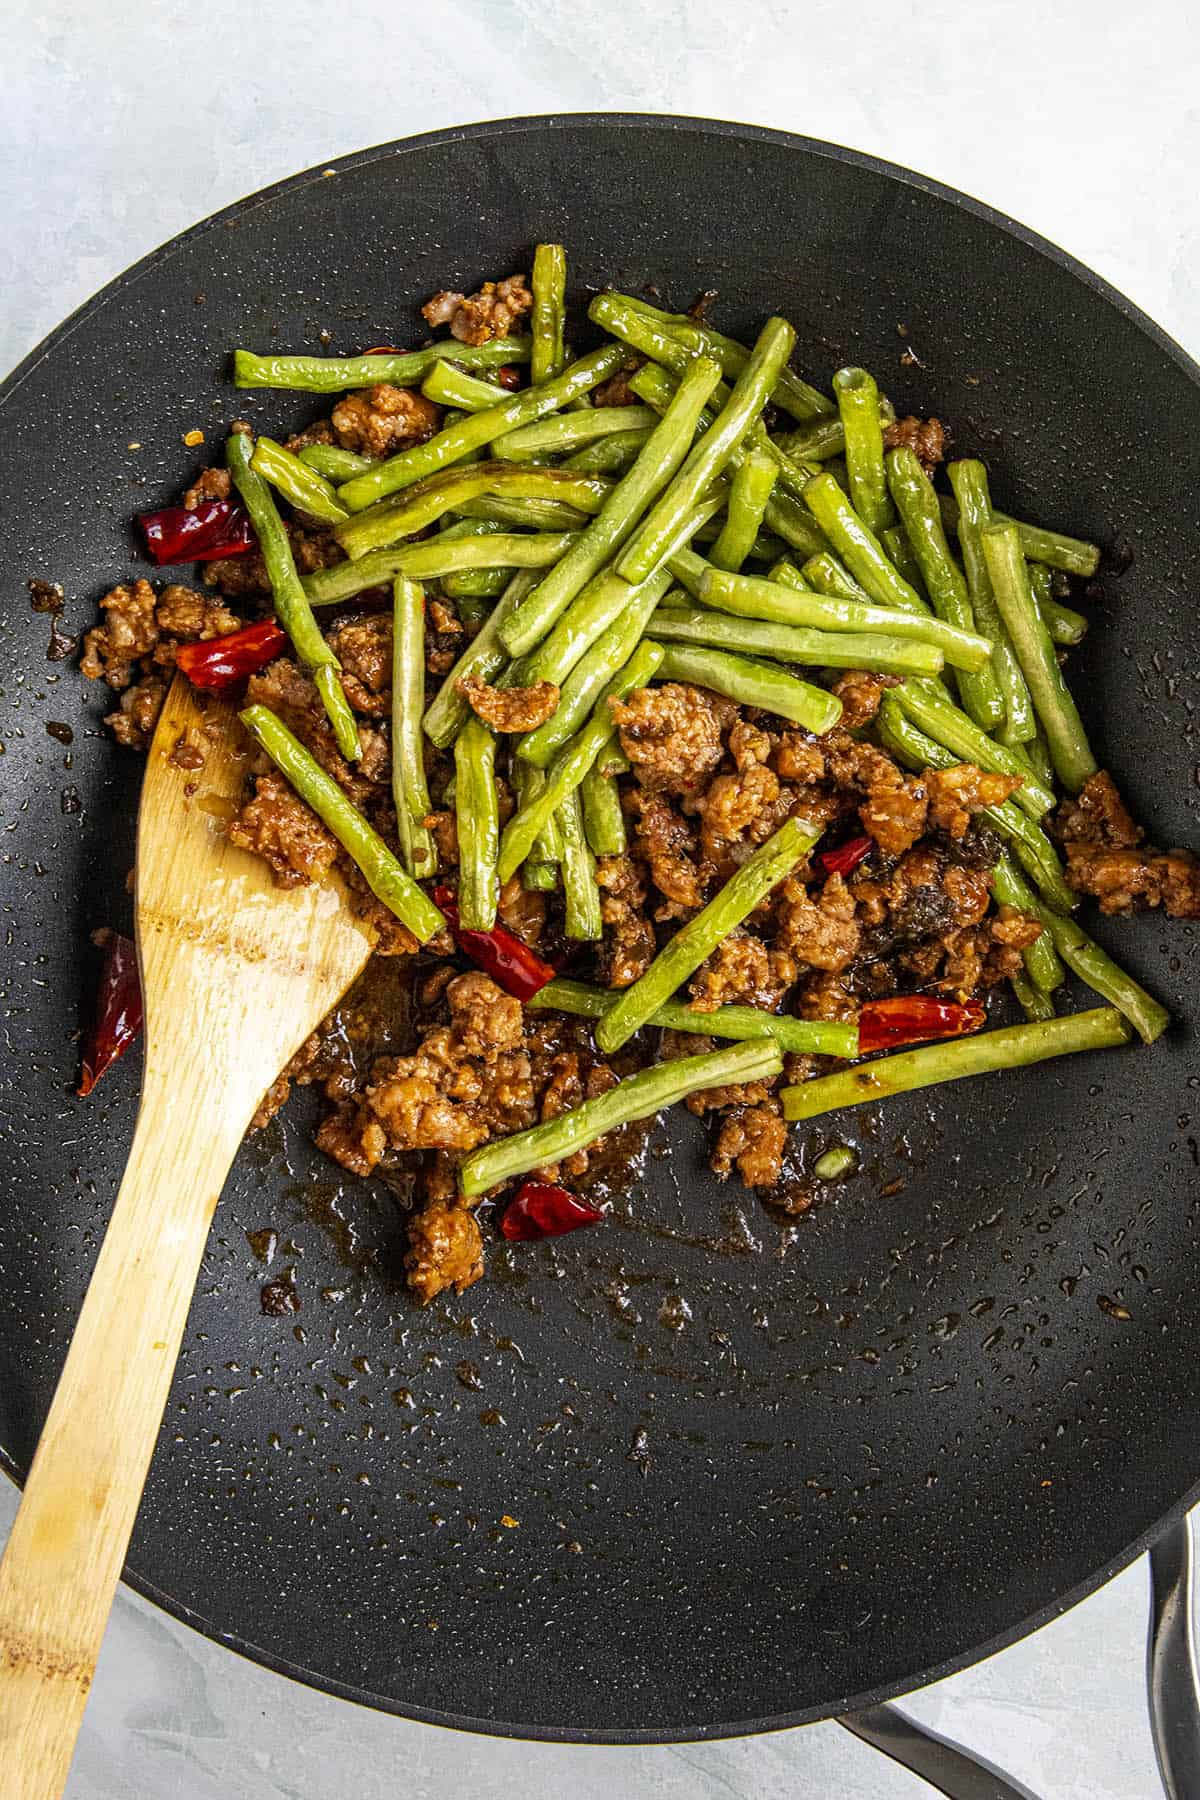 Stirring together the long beans with the pork and peppers in a hot pan